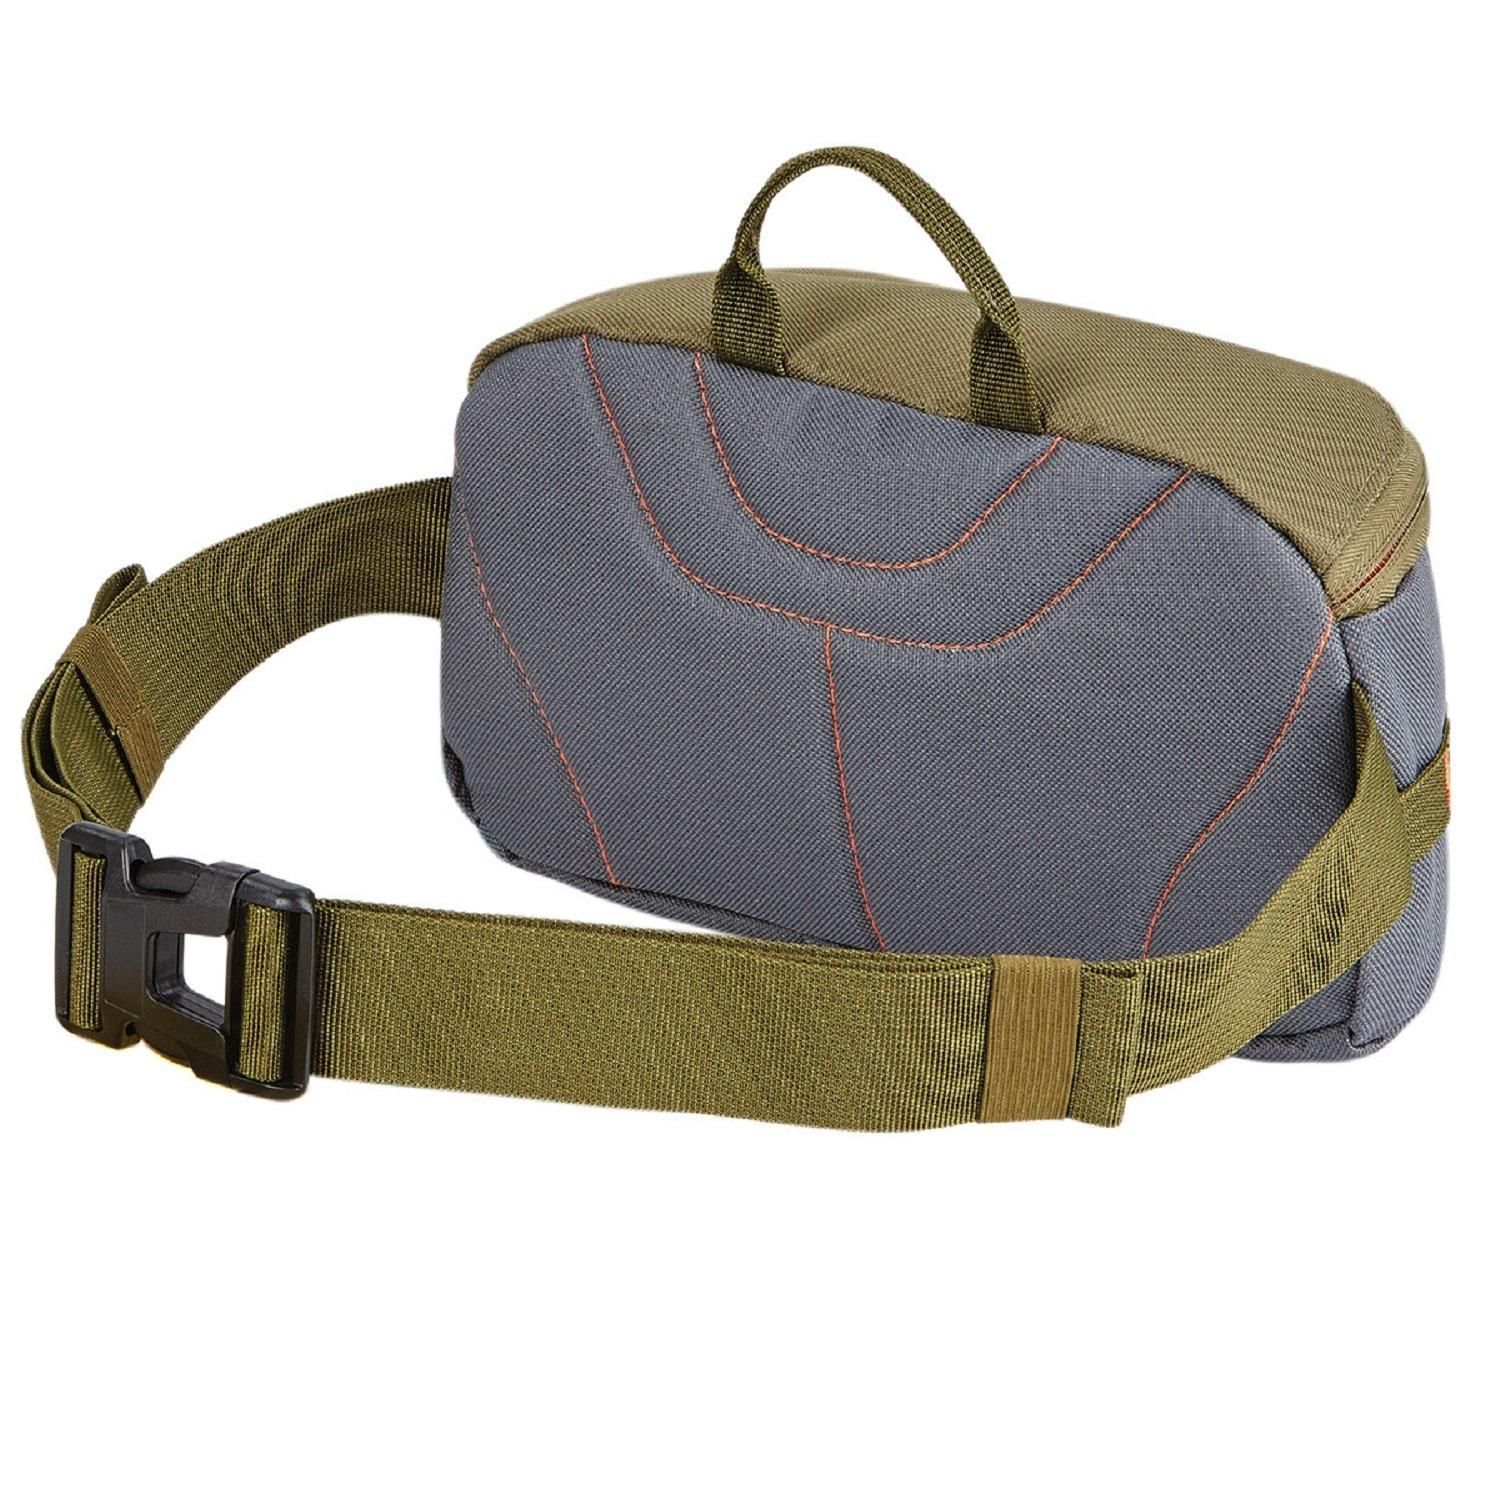 Onyx F1X Realtree Xtra Waistpack | Products | Pinterest | Products